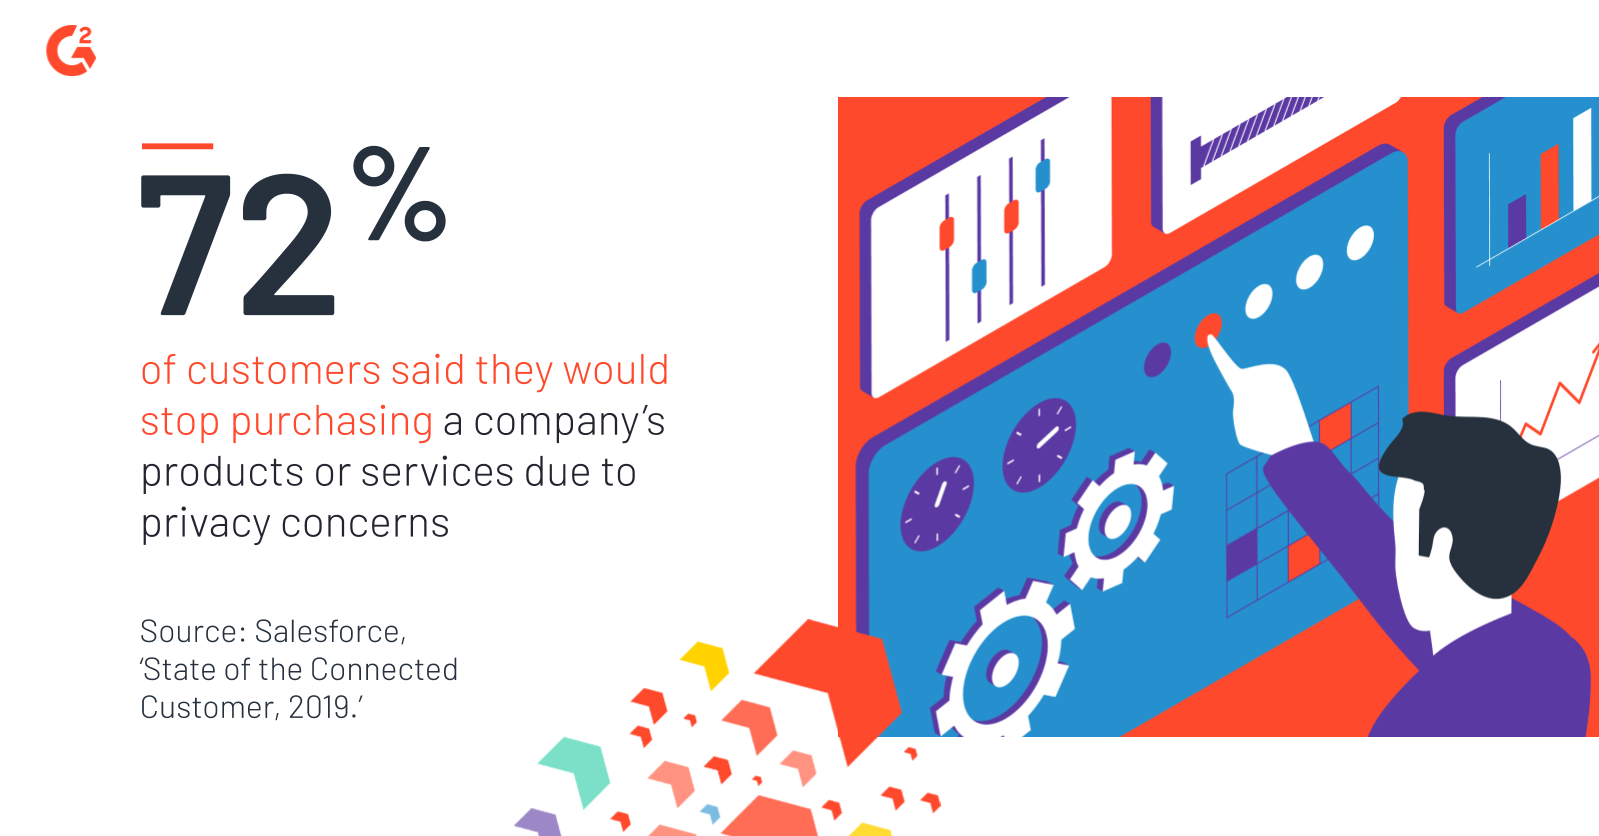 72% of customers said they would stop purchasing a company's products or services due to privacy concerns